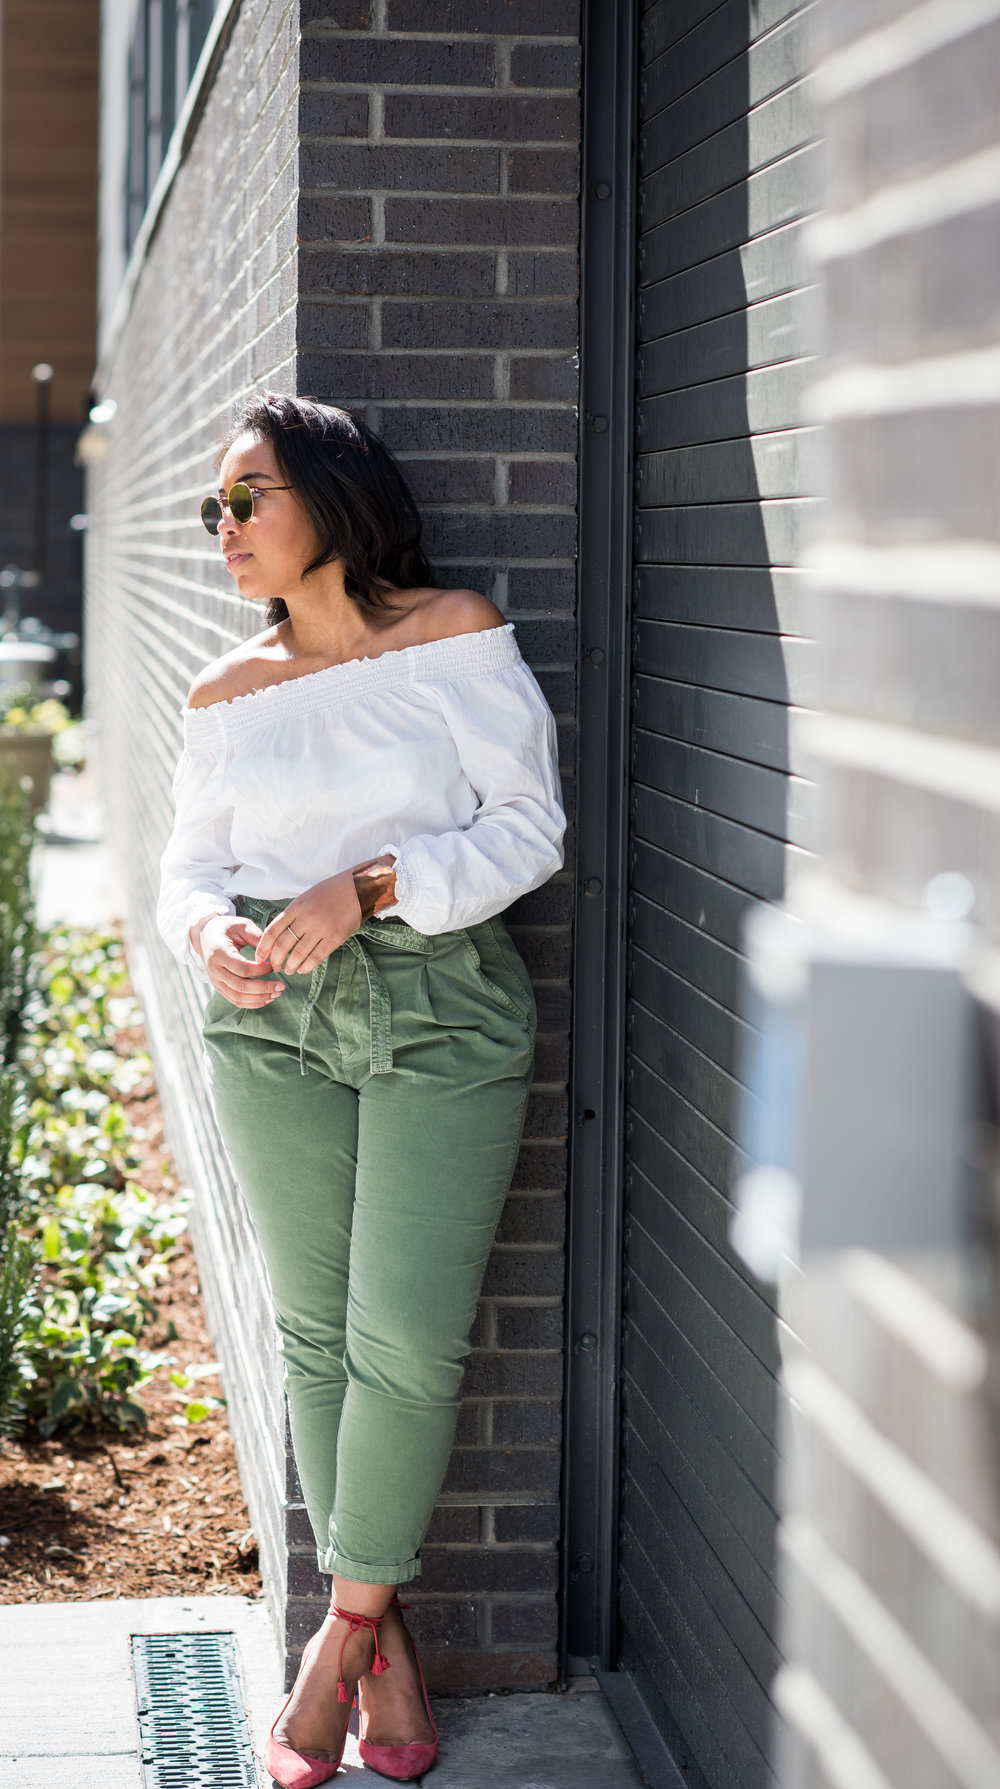 gap-paper-bag-waist-chinos-off-the-shoulder-blouse-jcrew-tassle-pumps-round-sunglasses-urban-outfitters-spring-fashion-3.JPG